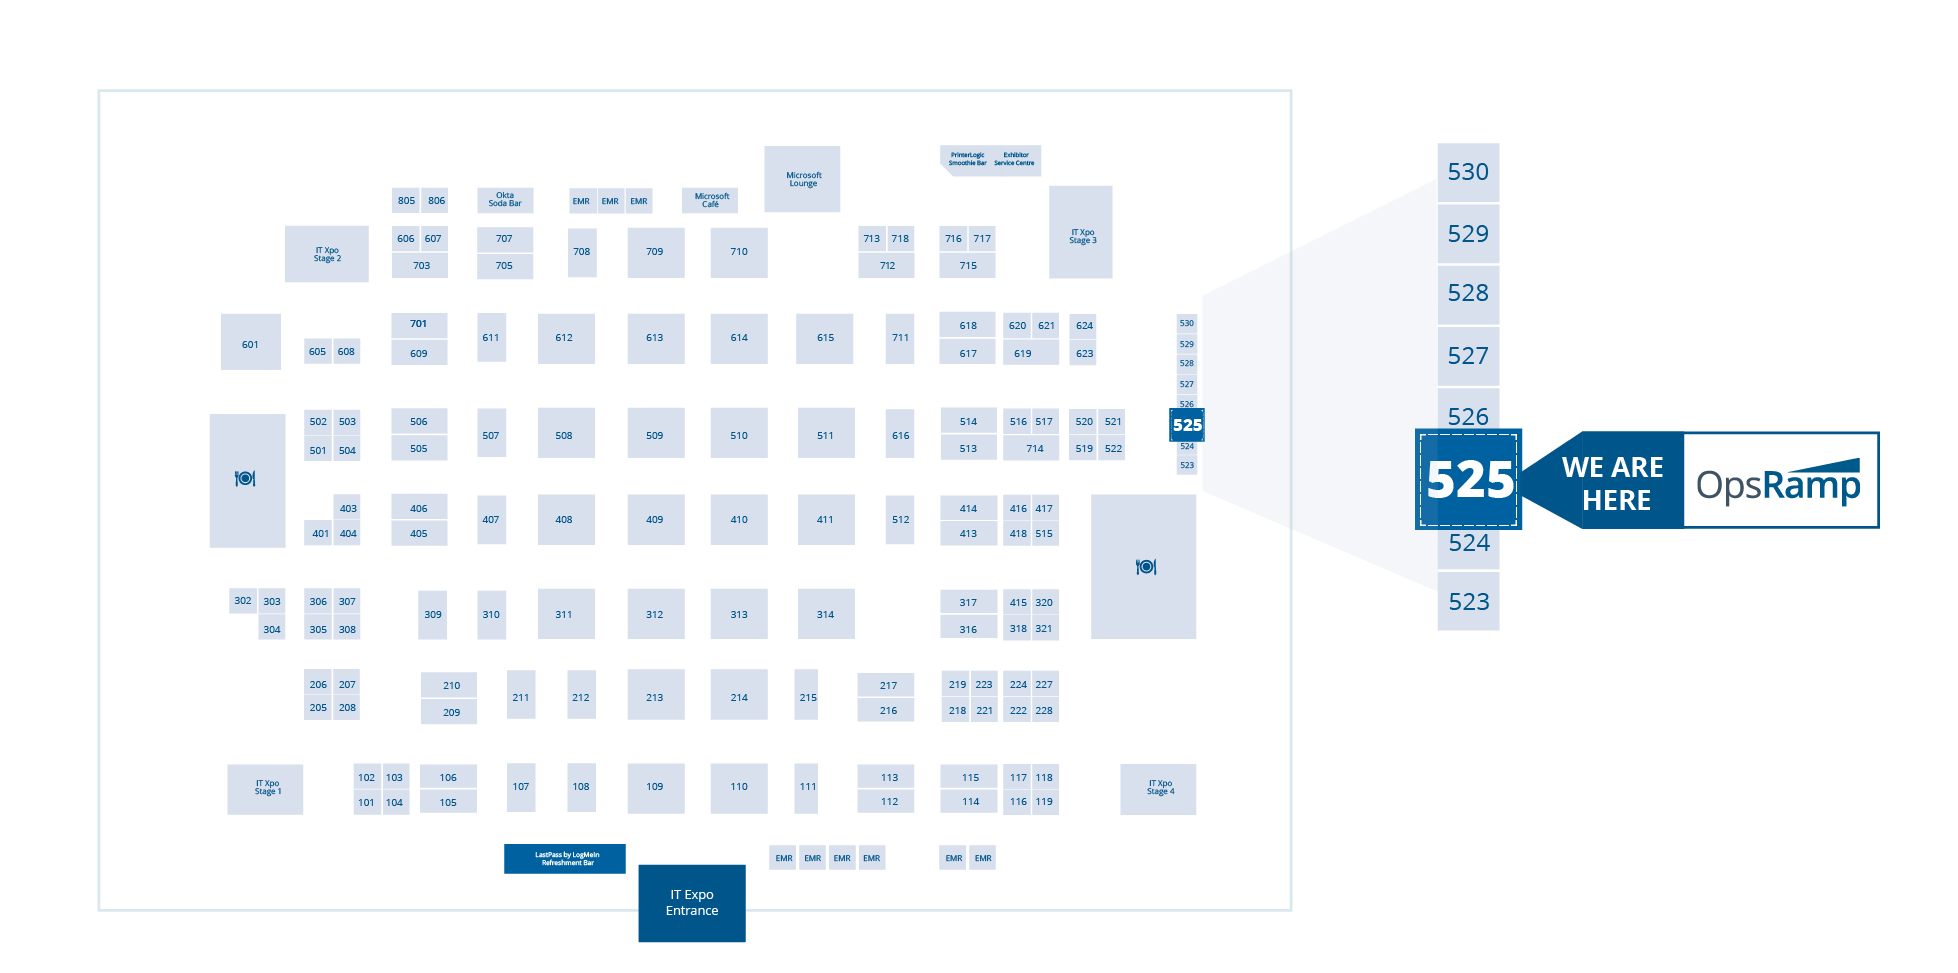 Connect with OpsRamp at booth #525